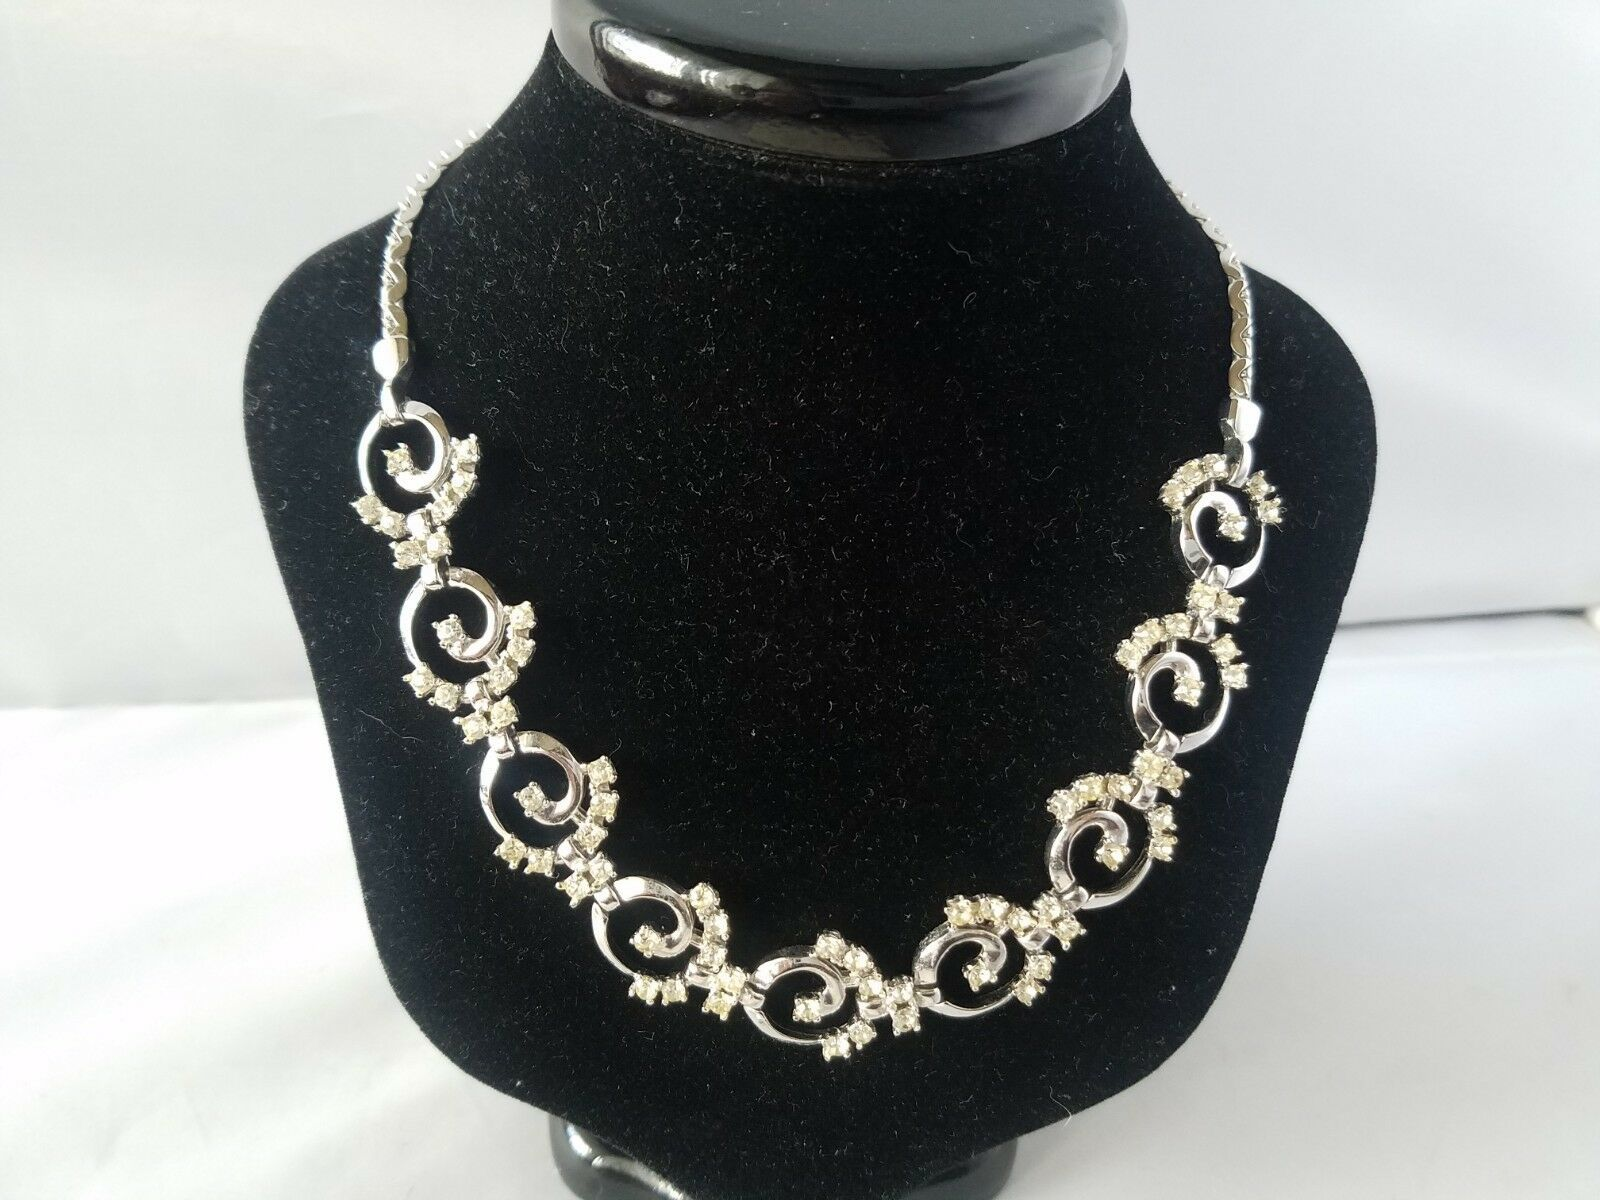 Lord & Taylor Vintage Jewelry Set Silver Tone Necklace & Clip On Earrings